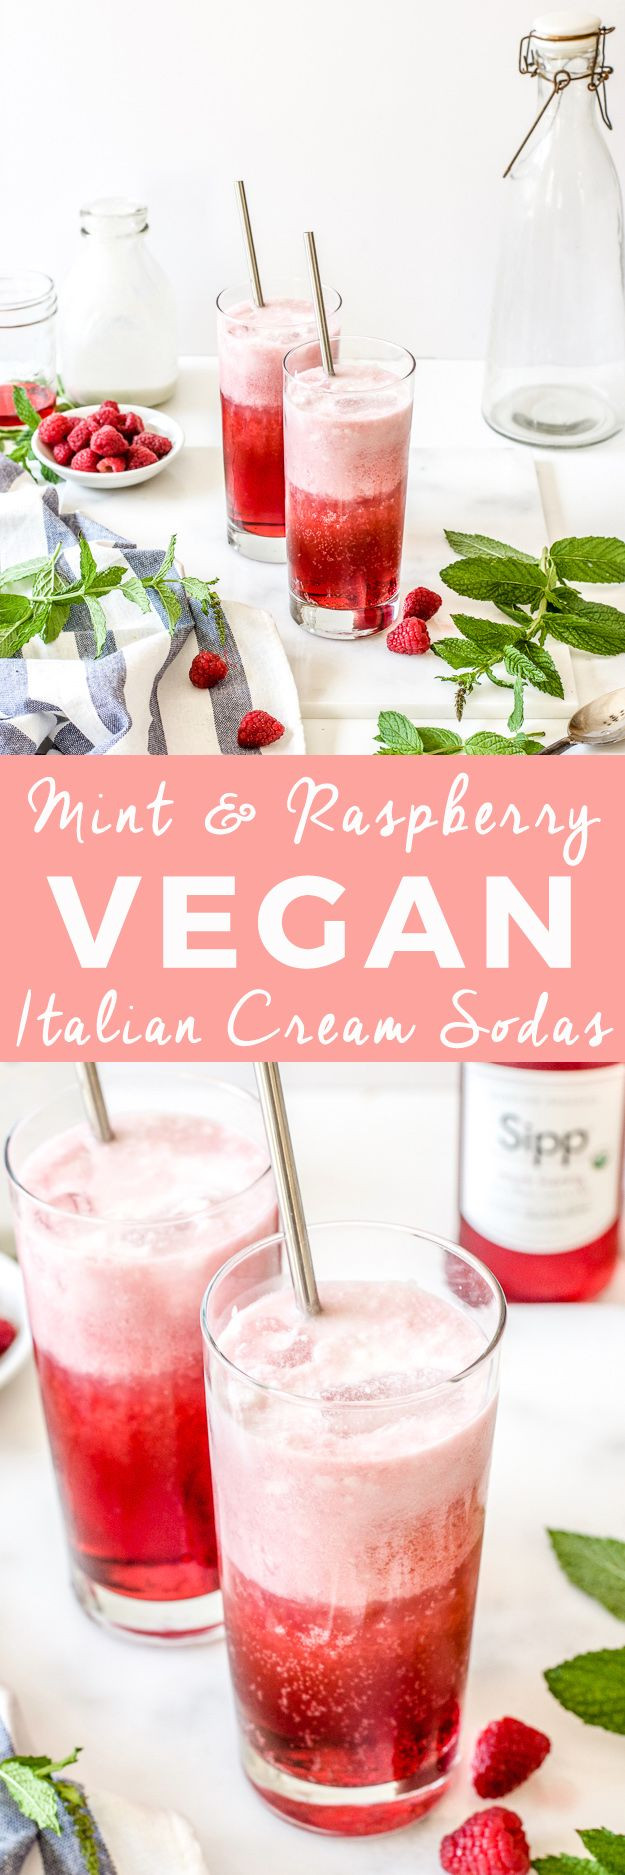 Italian Alcoholic Drinks  Best 20 Italian cream soda ideas on Pinterest